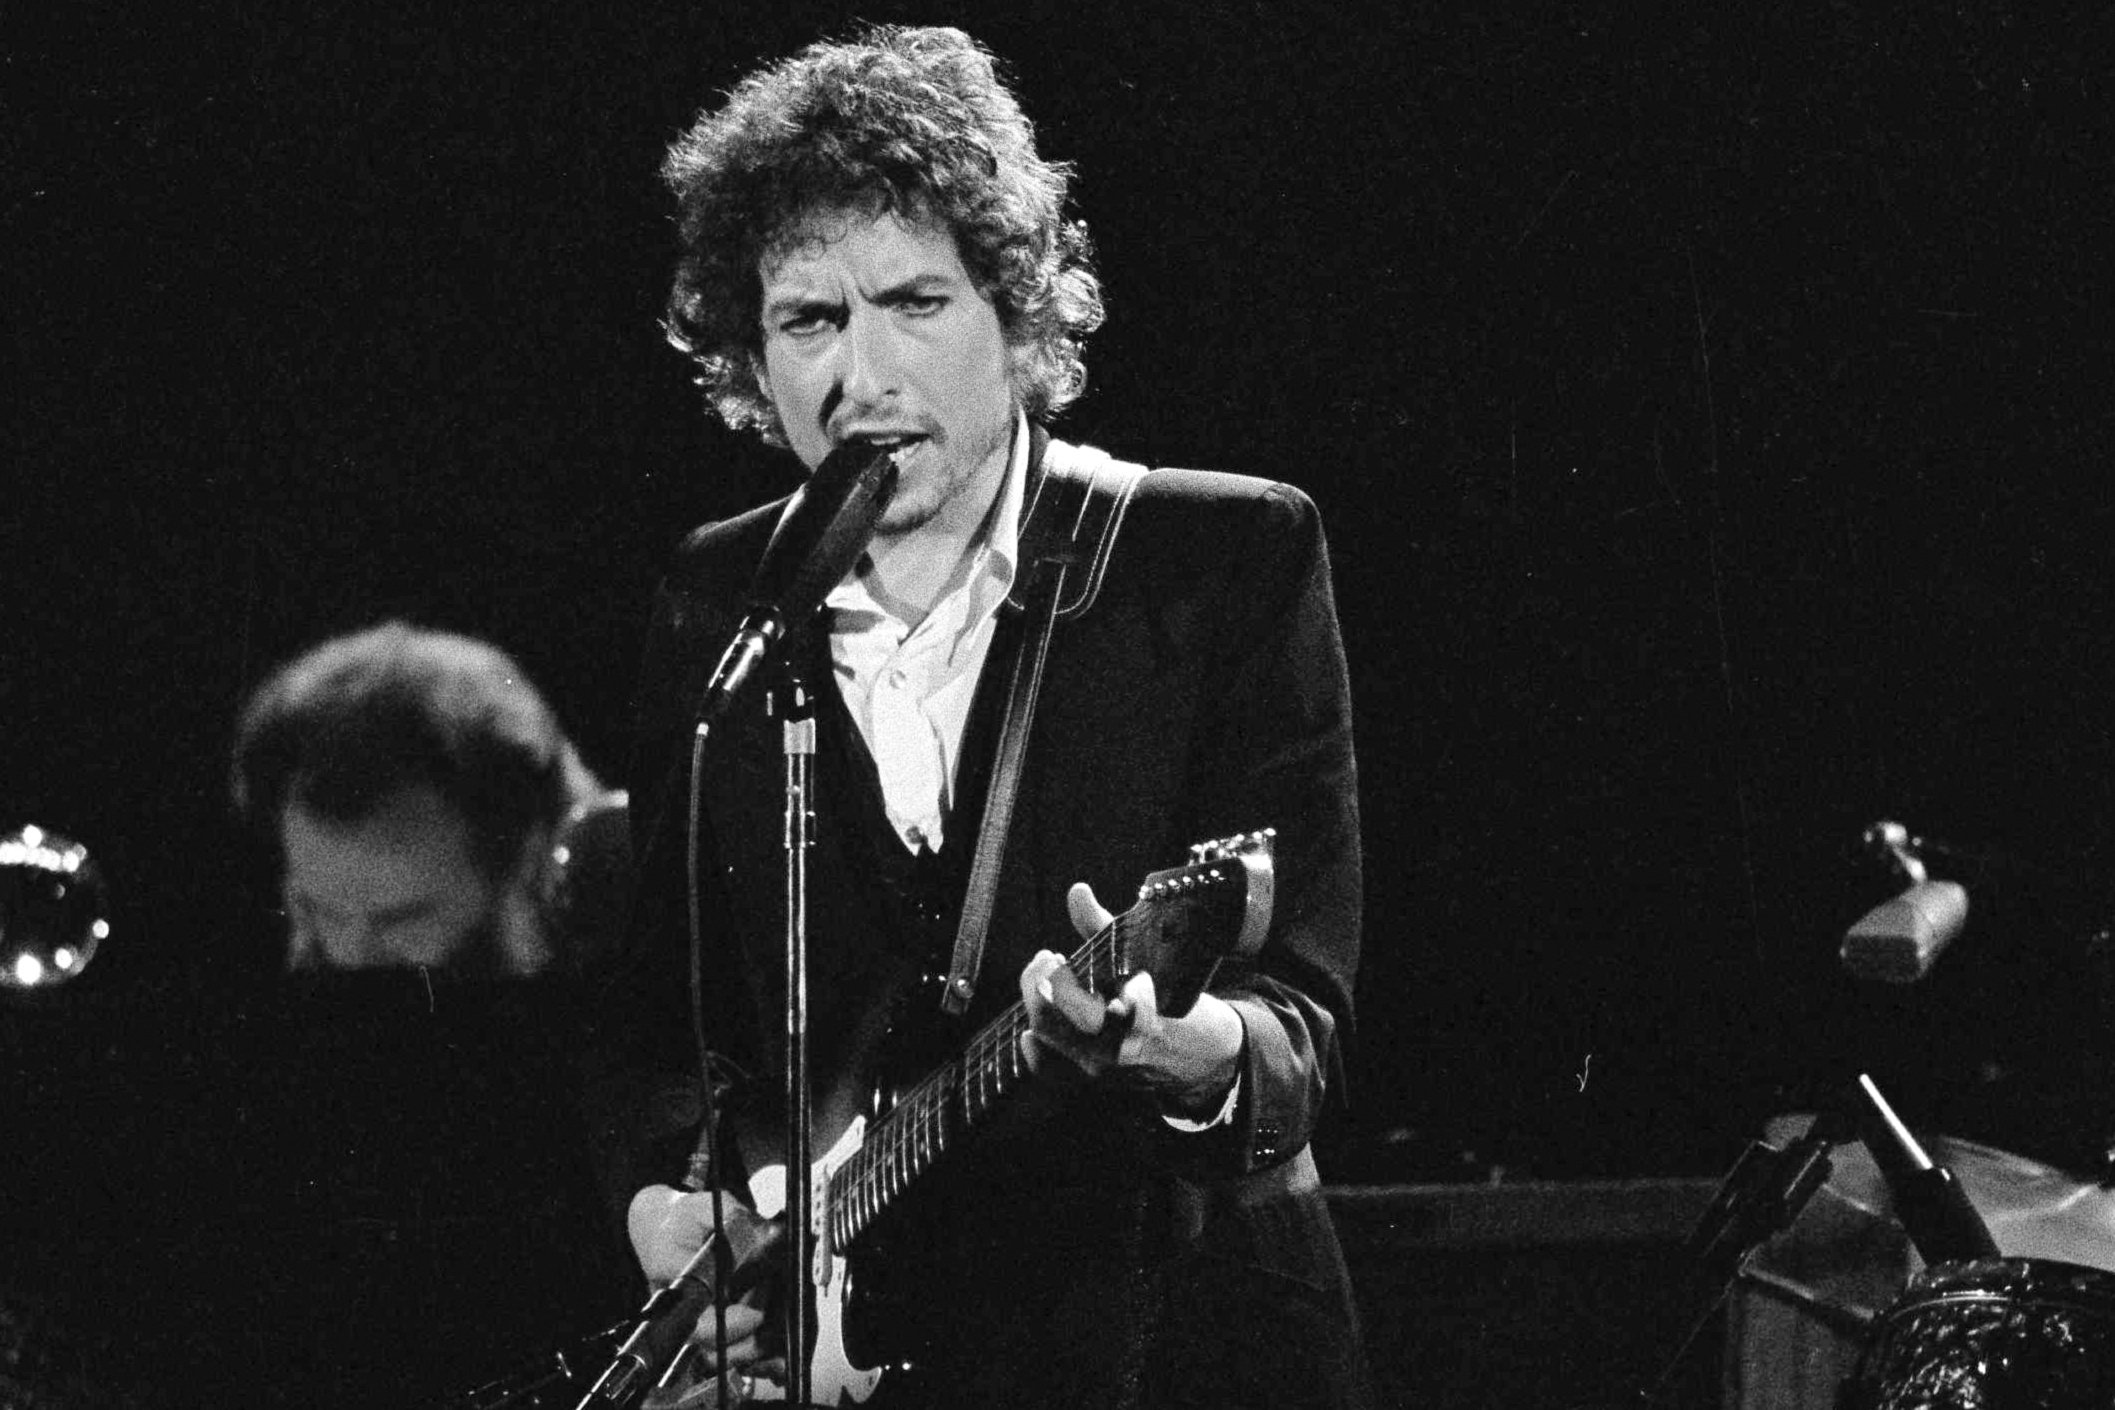 Musician Bob Dylan performs with The Band at the Forum in Los Angeles, California, U.S., Feb. 15, 1974. (AP Photo)